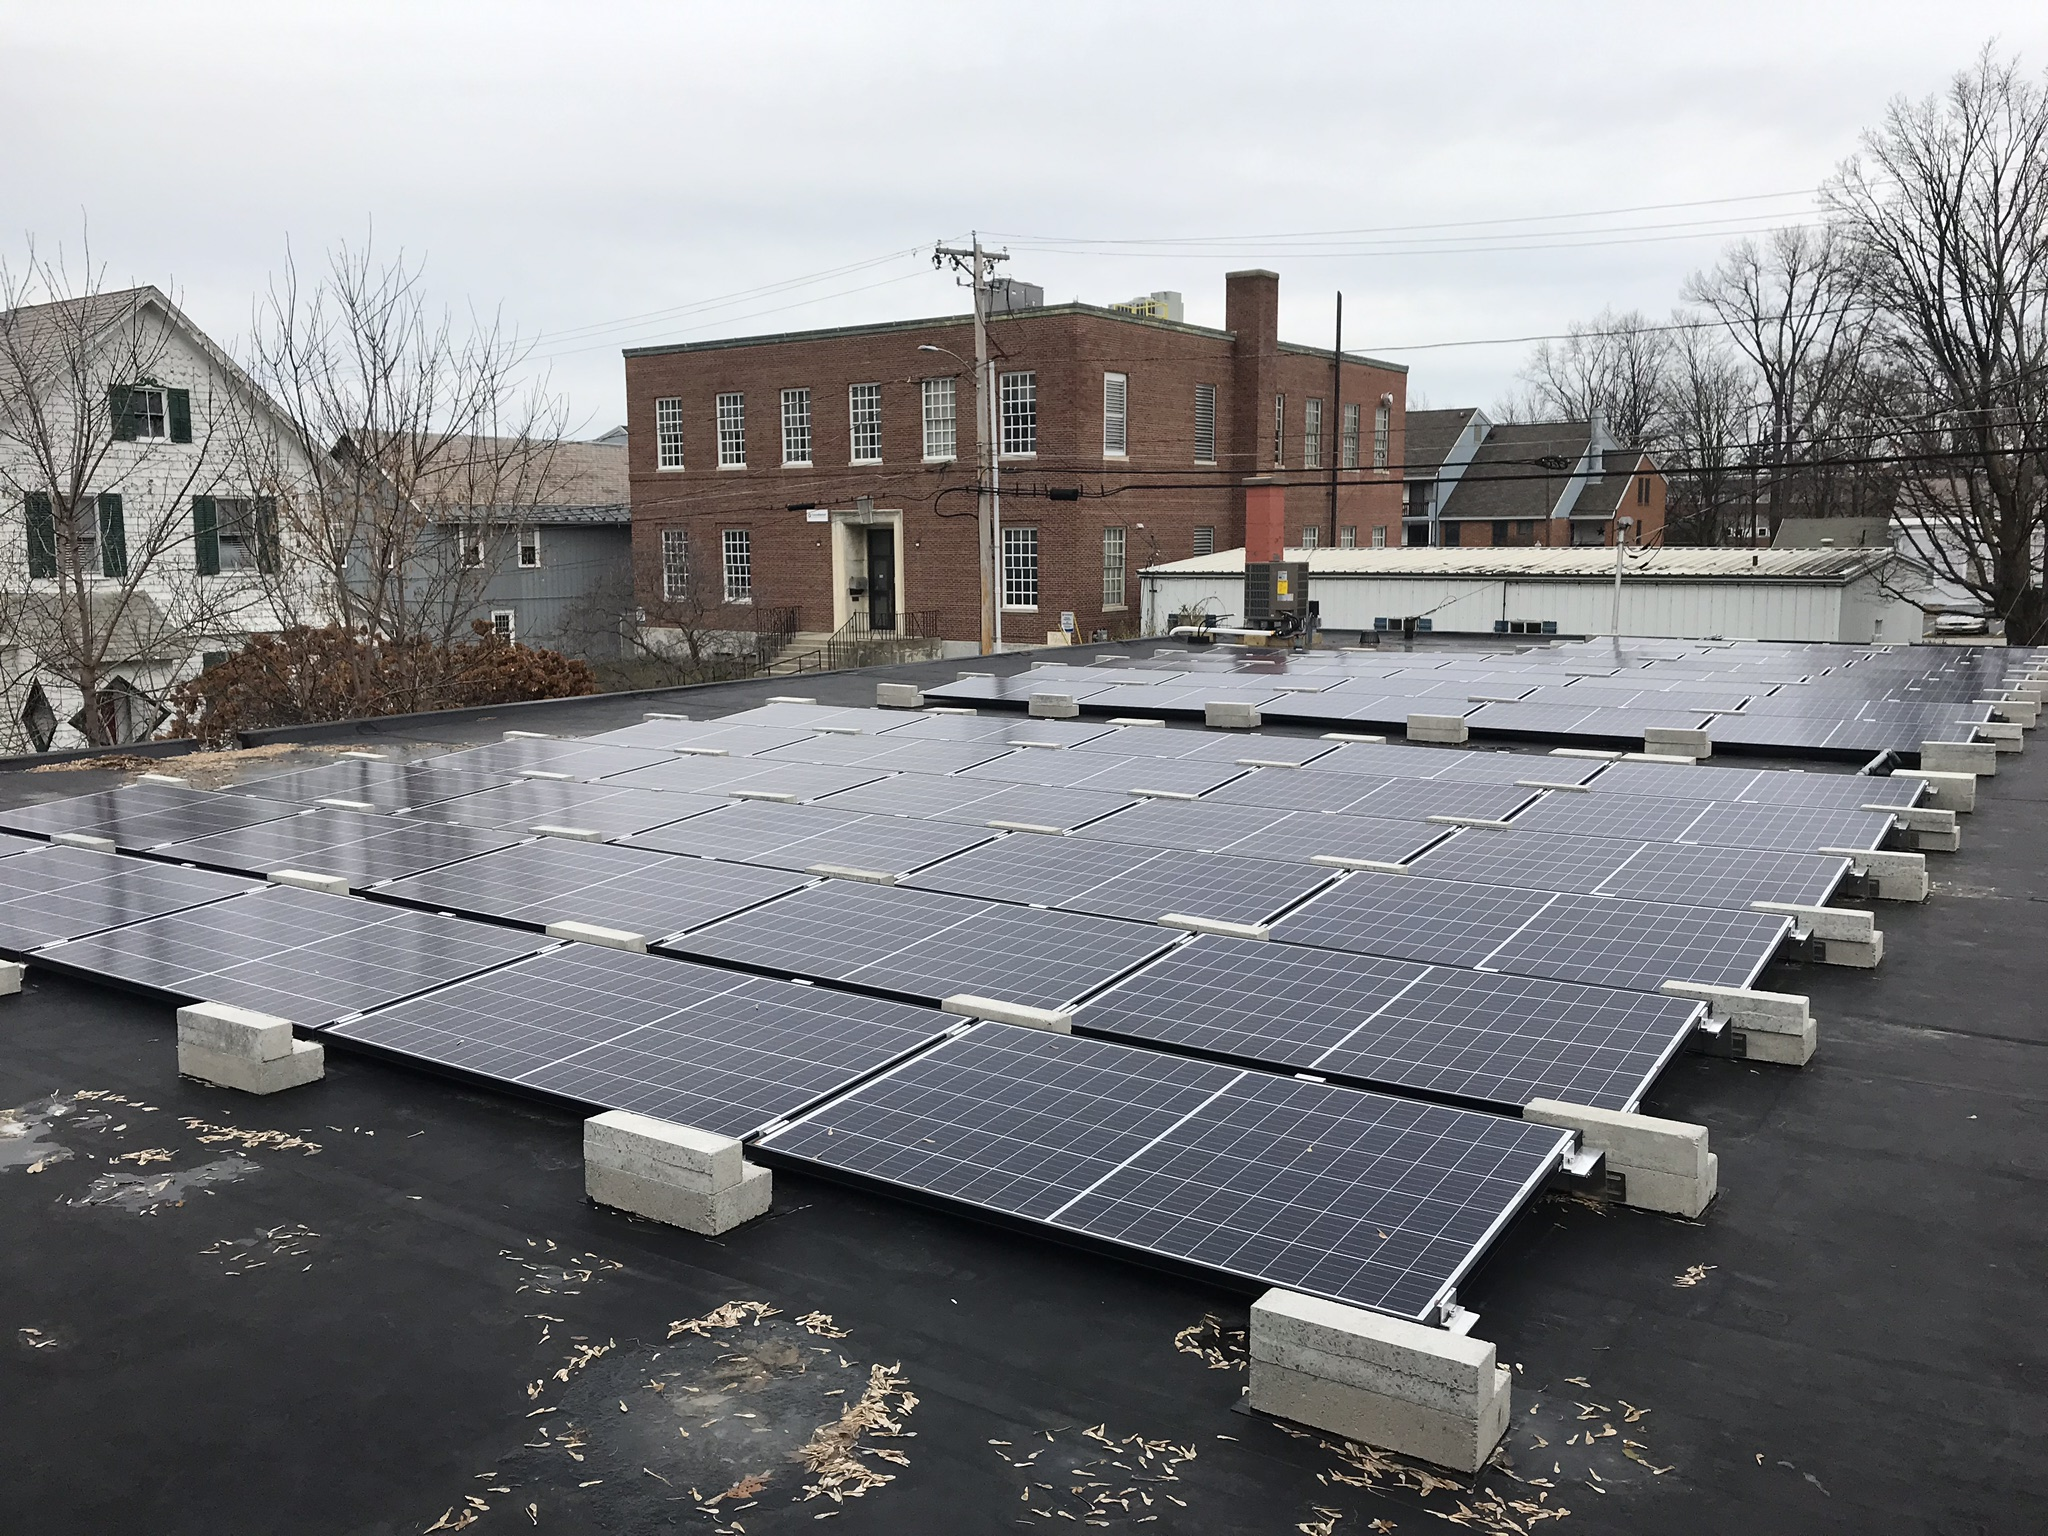 Commercial Solar Power array on a business